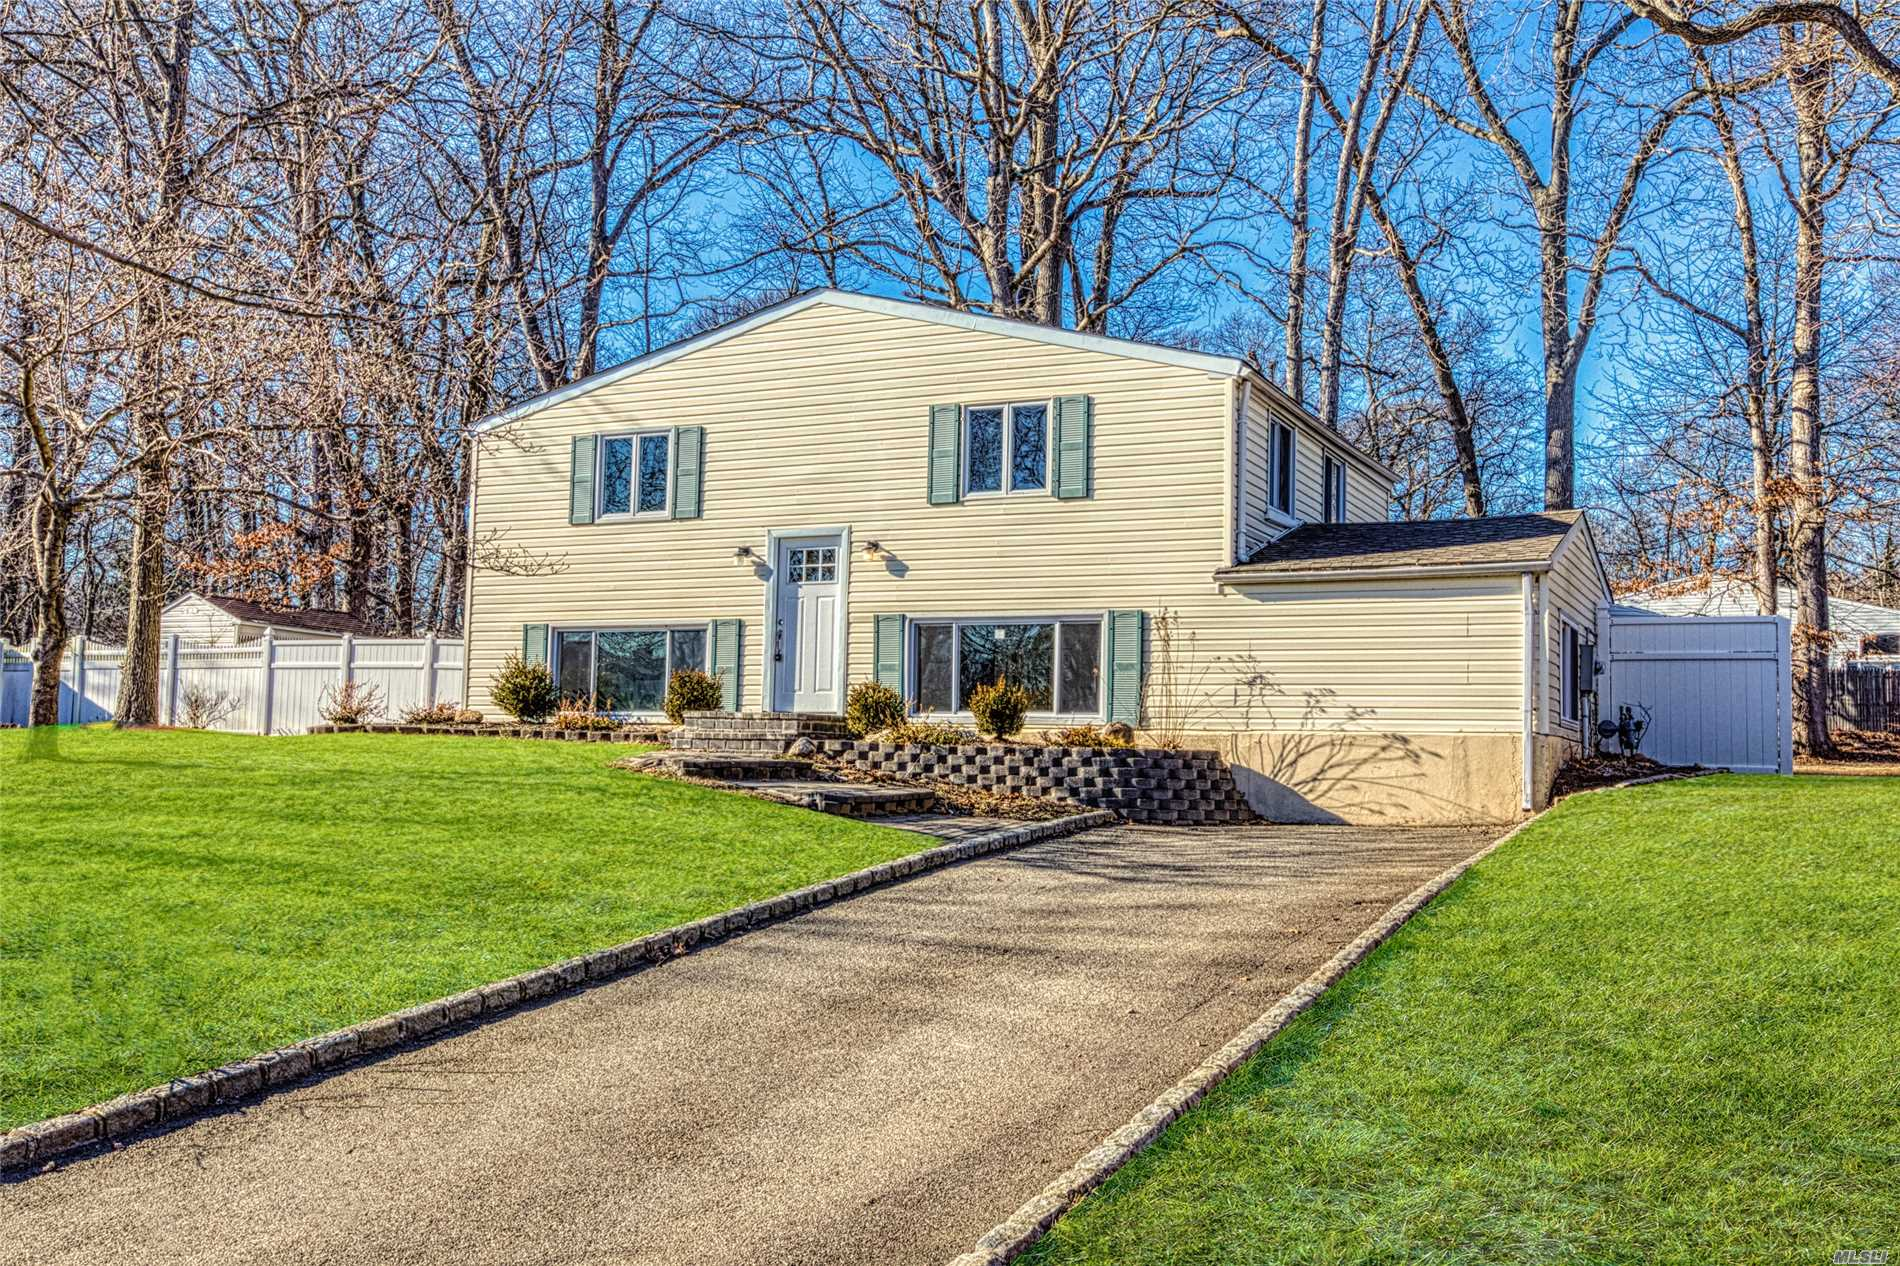 Photo of home for sale at 40 Ivy League Ln, Stony Brook NY